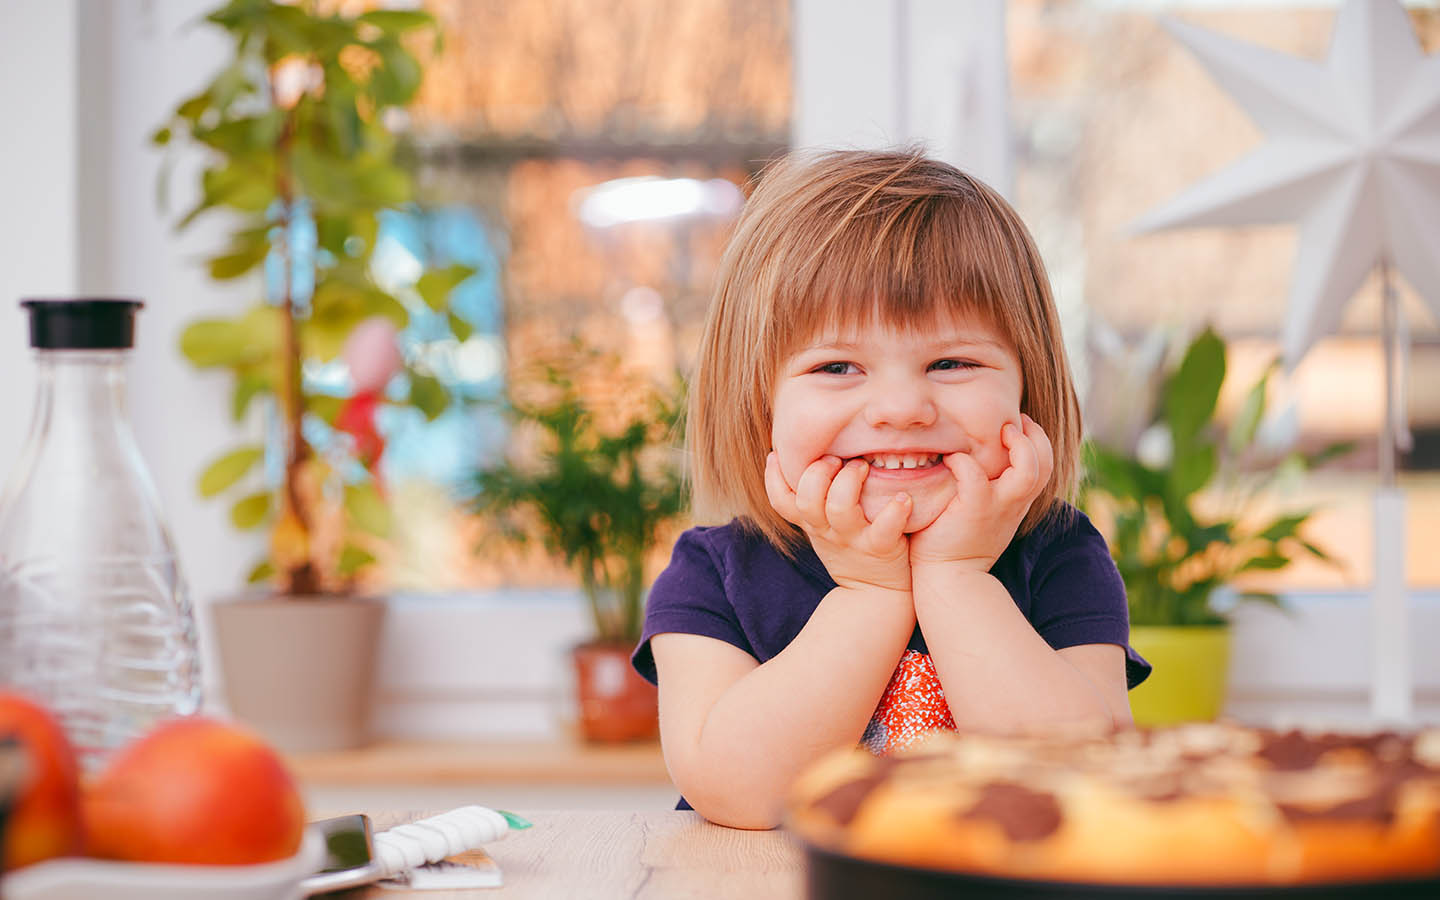 Girl posing after making a kids meal during a cooking activity